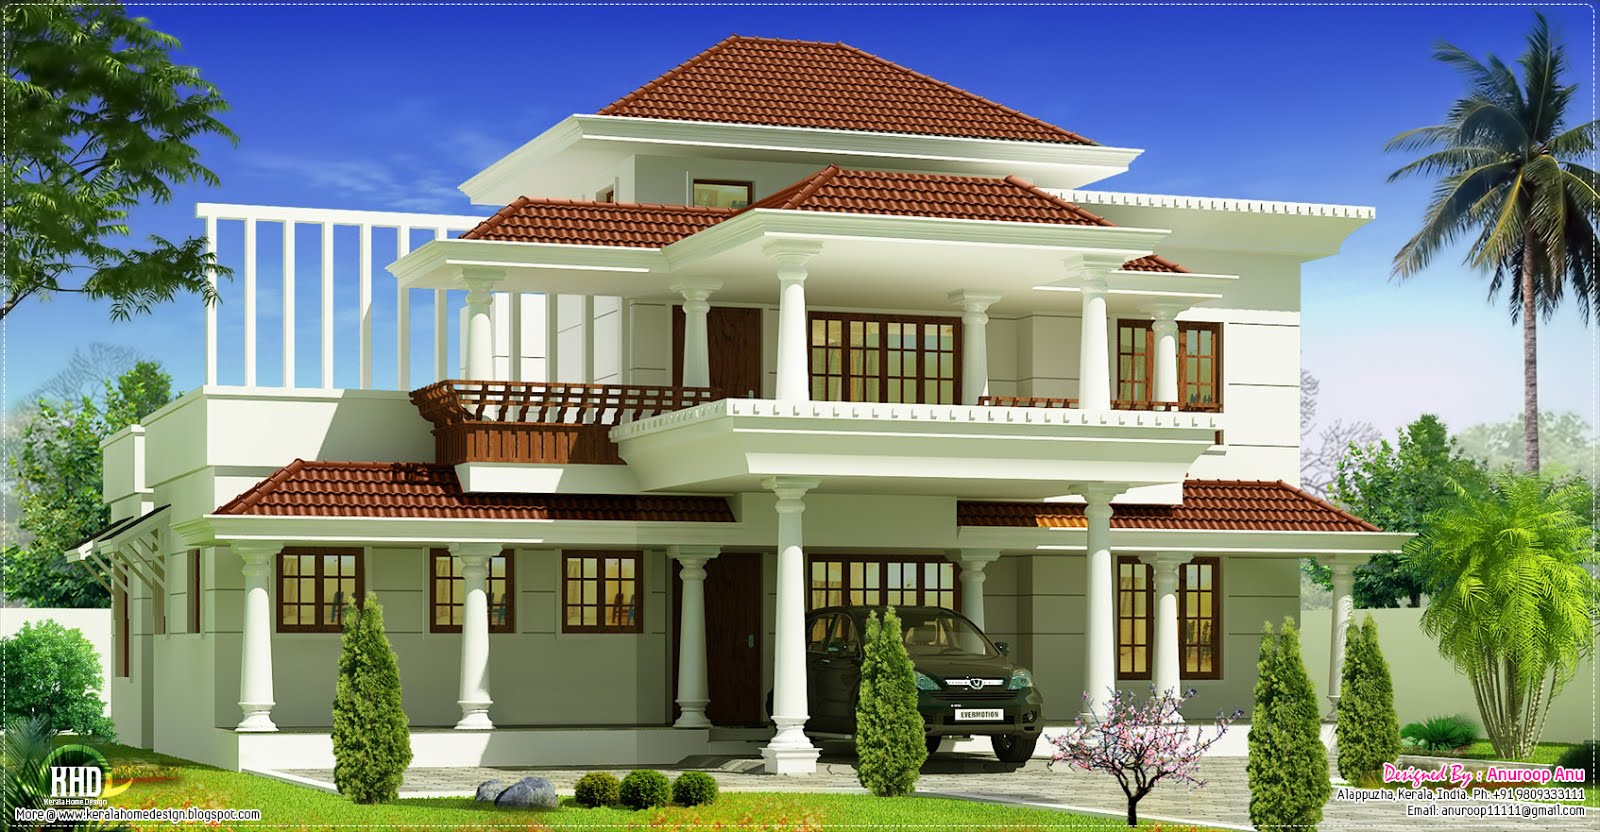 Kerala house models houses plans designs for New home models and plans